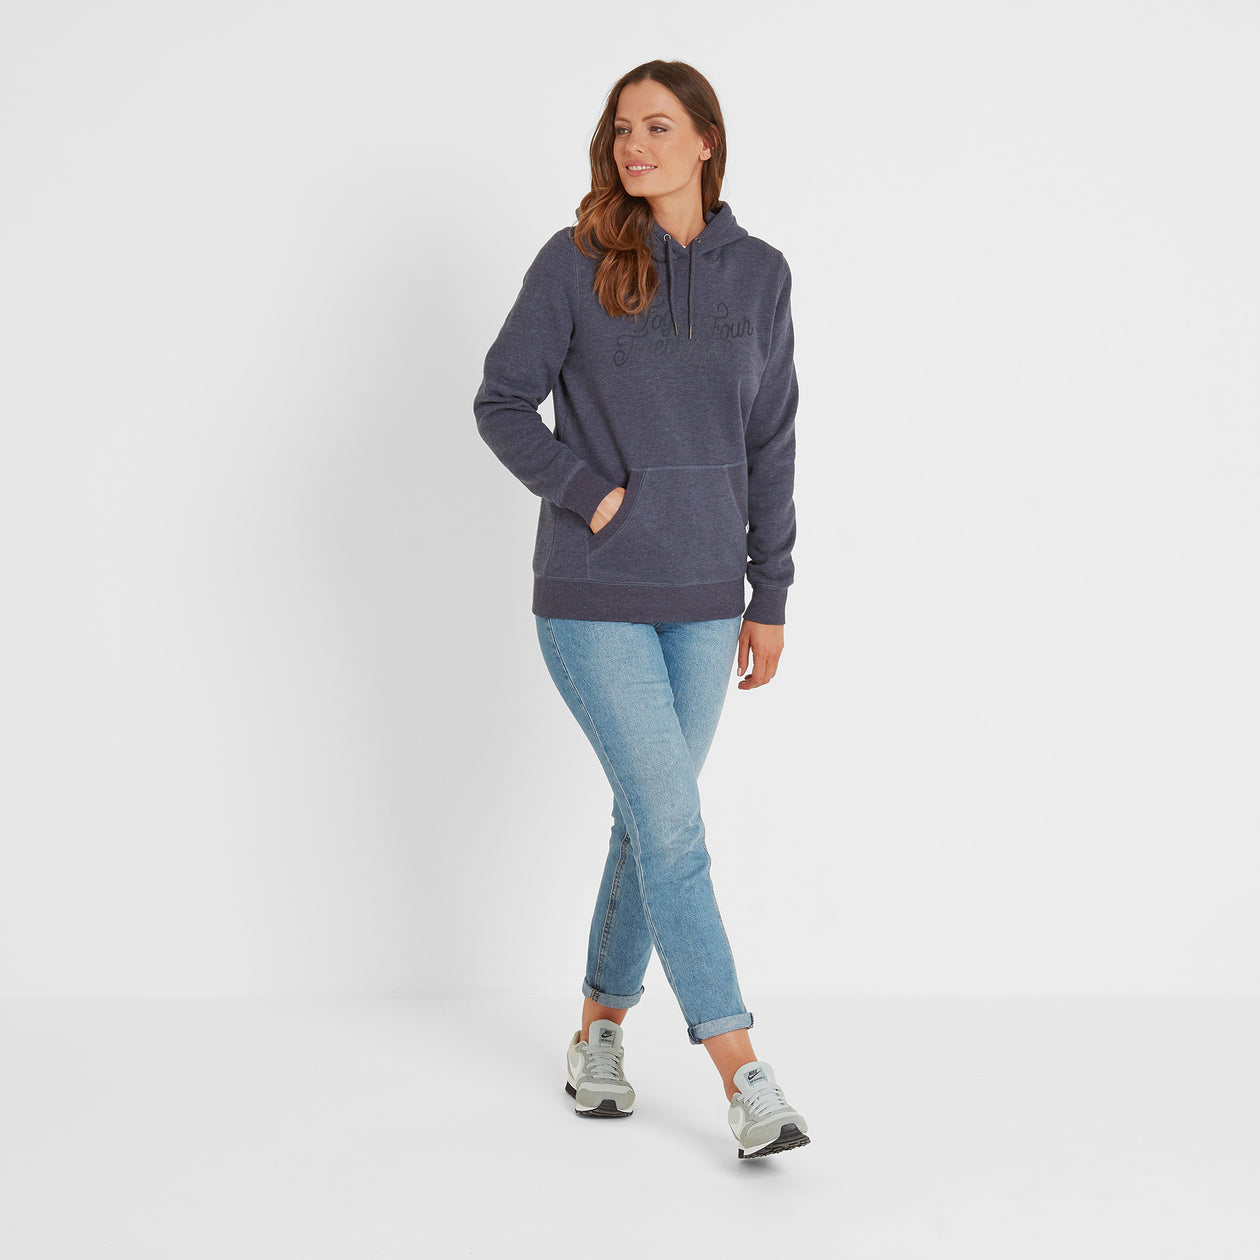 Mappleton Womens Hoody Curly Print - Dark Indigo Marl image 4